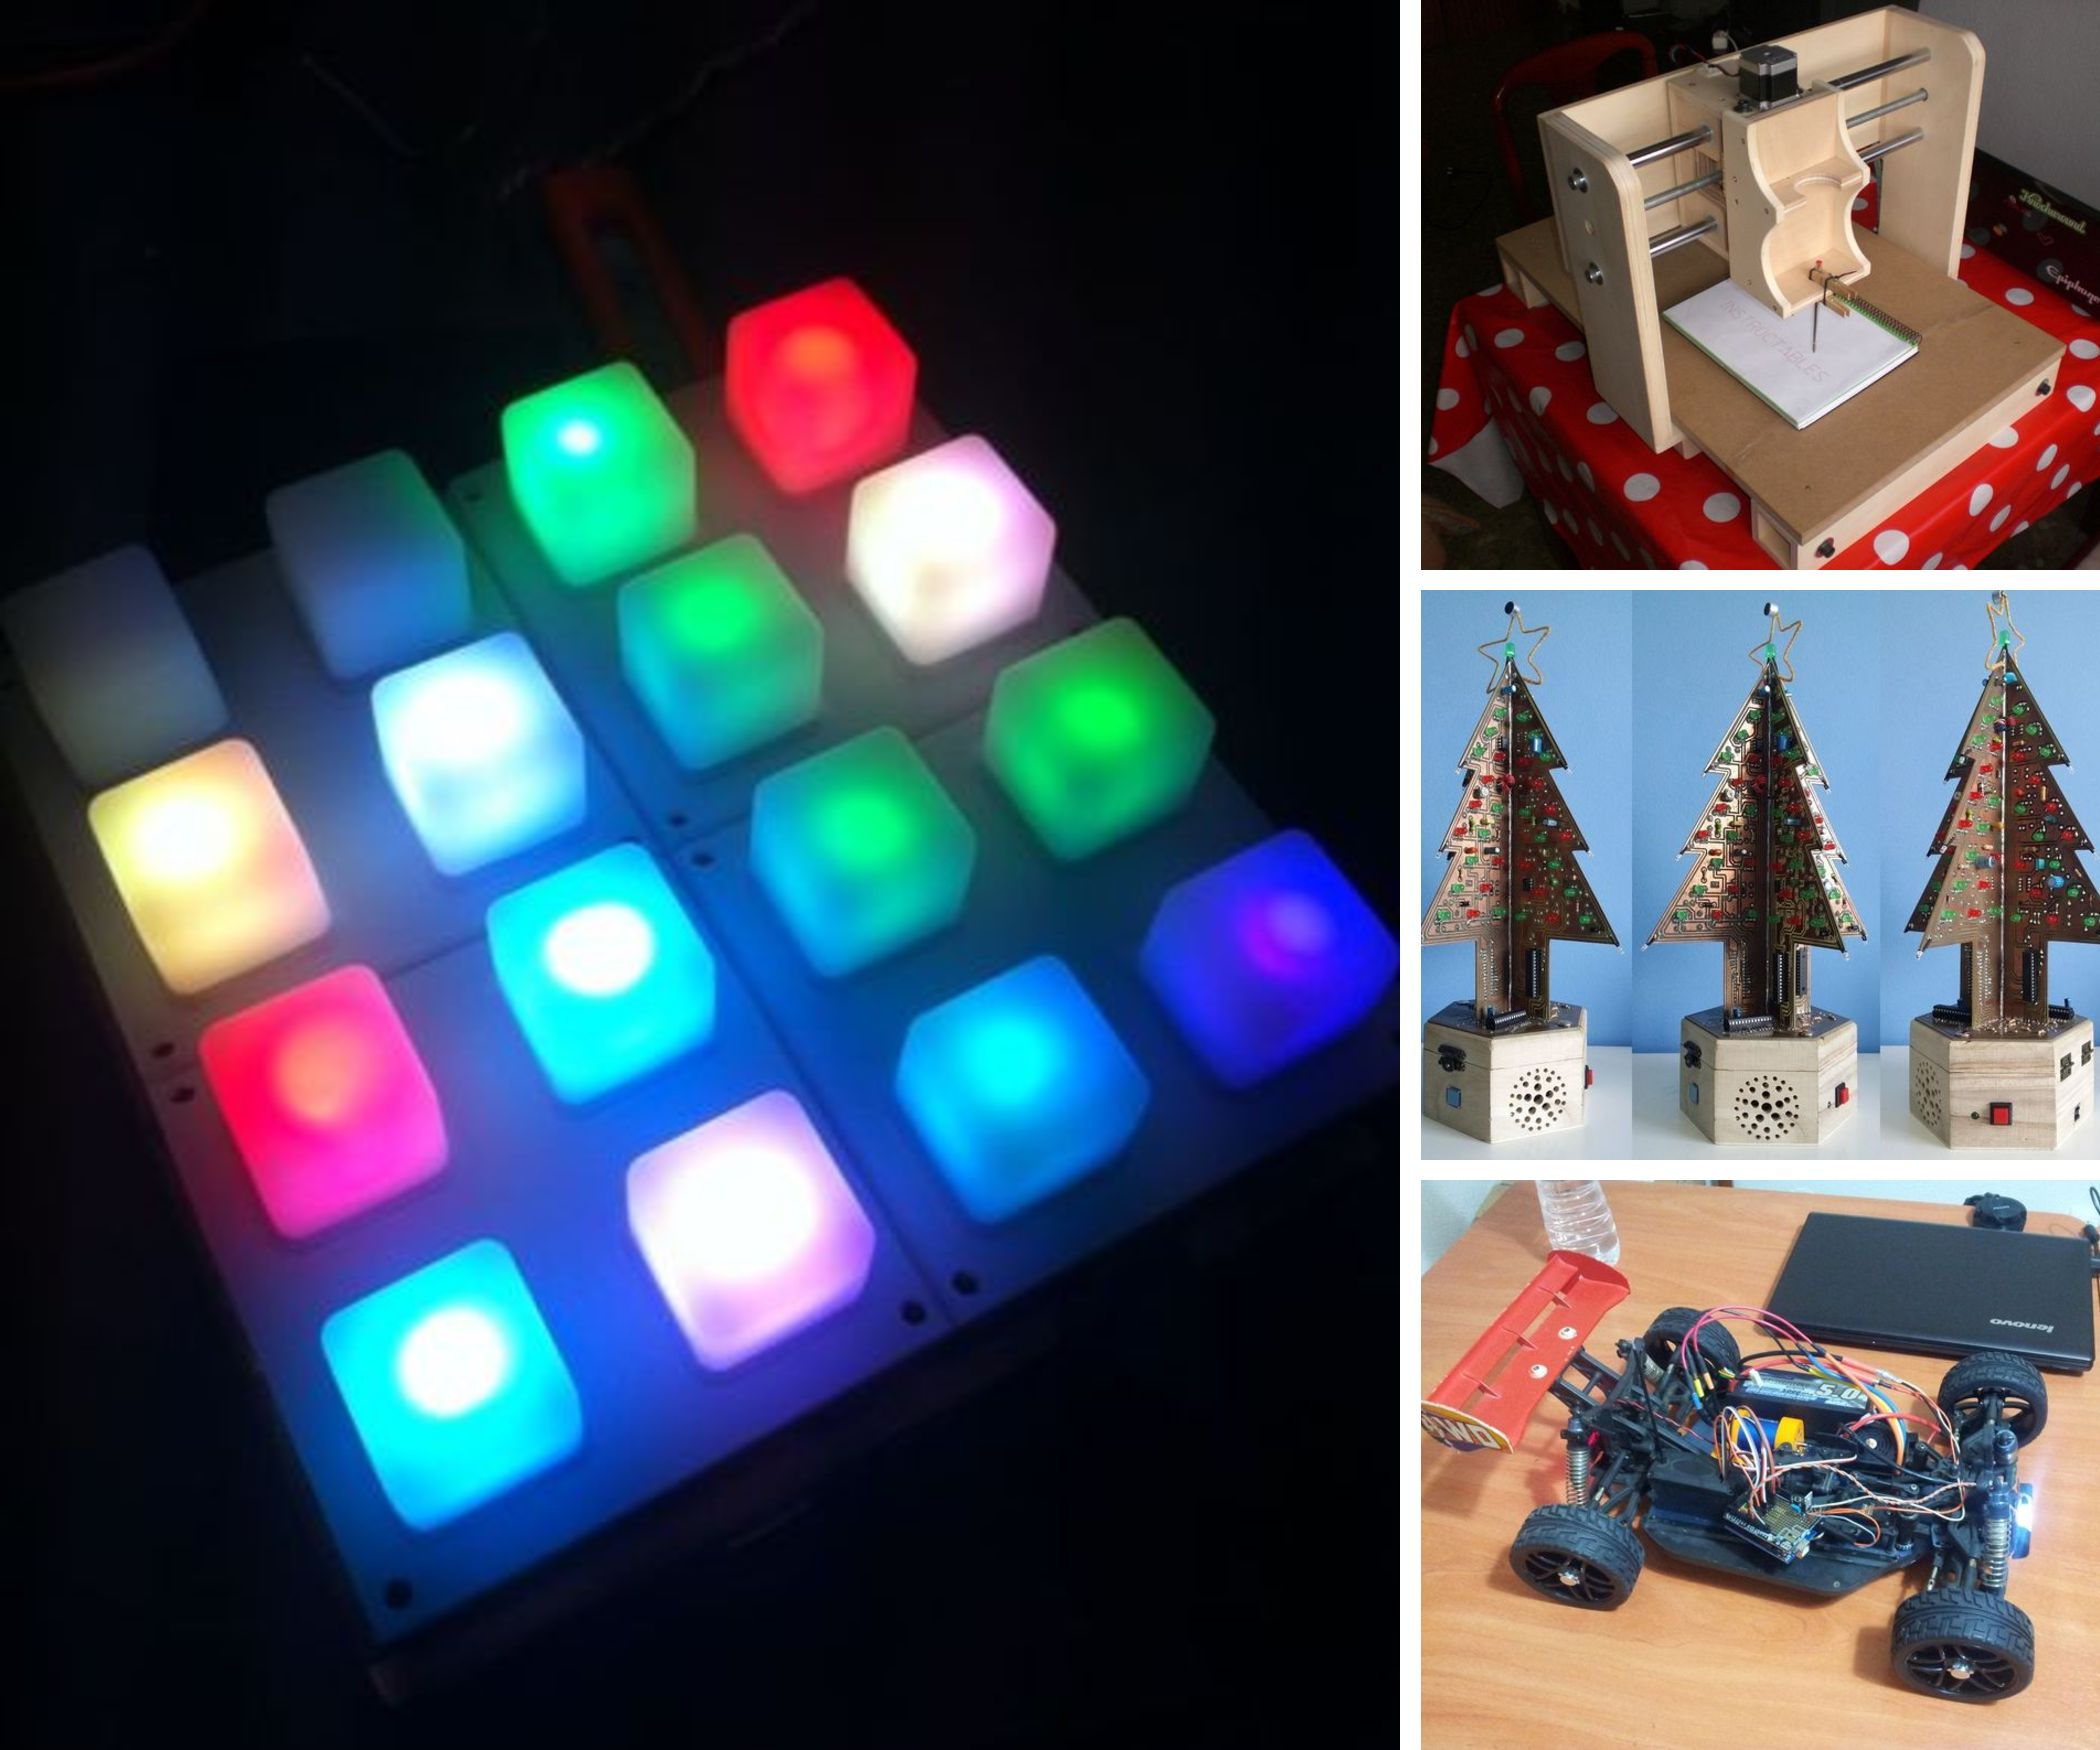 Creative Electronics student projects